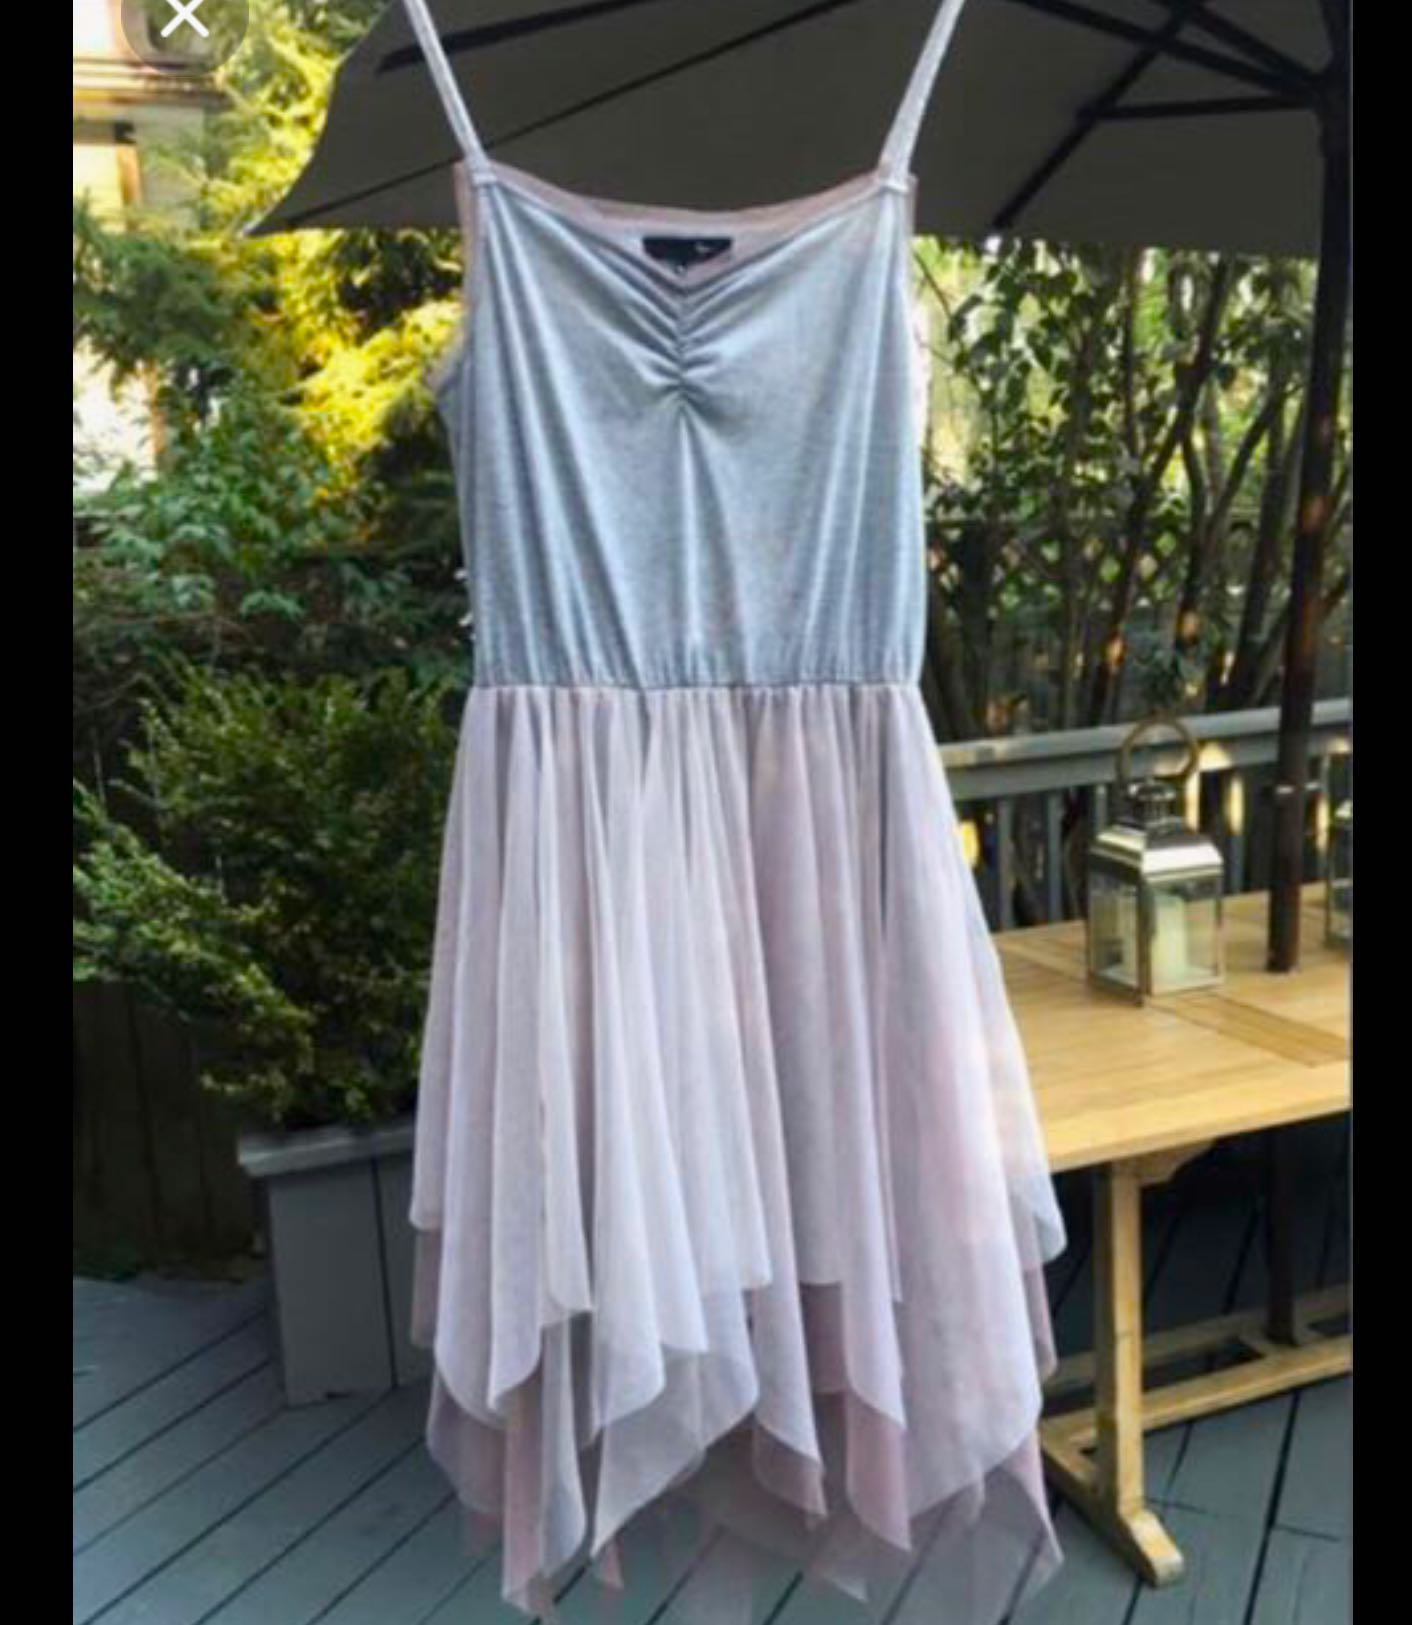 Beautiful grey/pale mauve dress with adjustable straps in size Medium